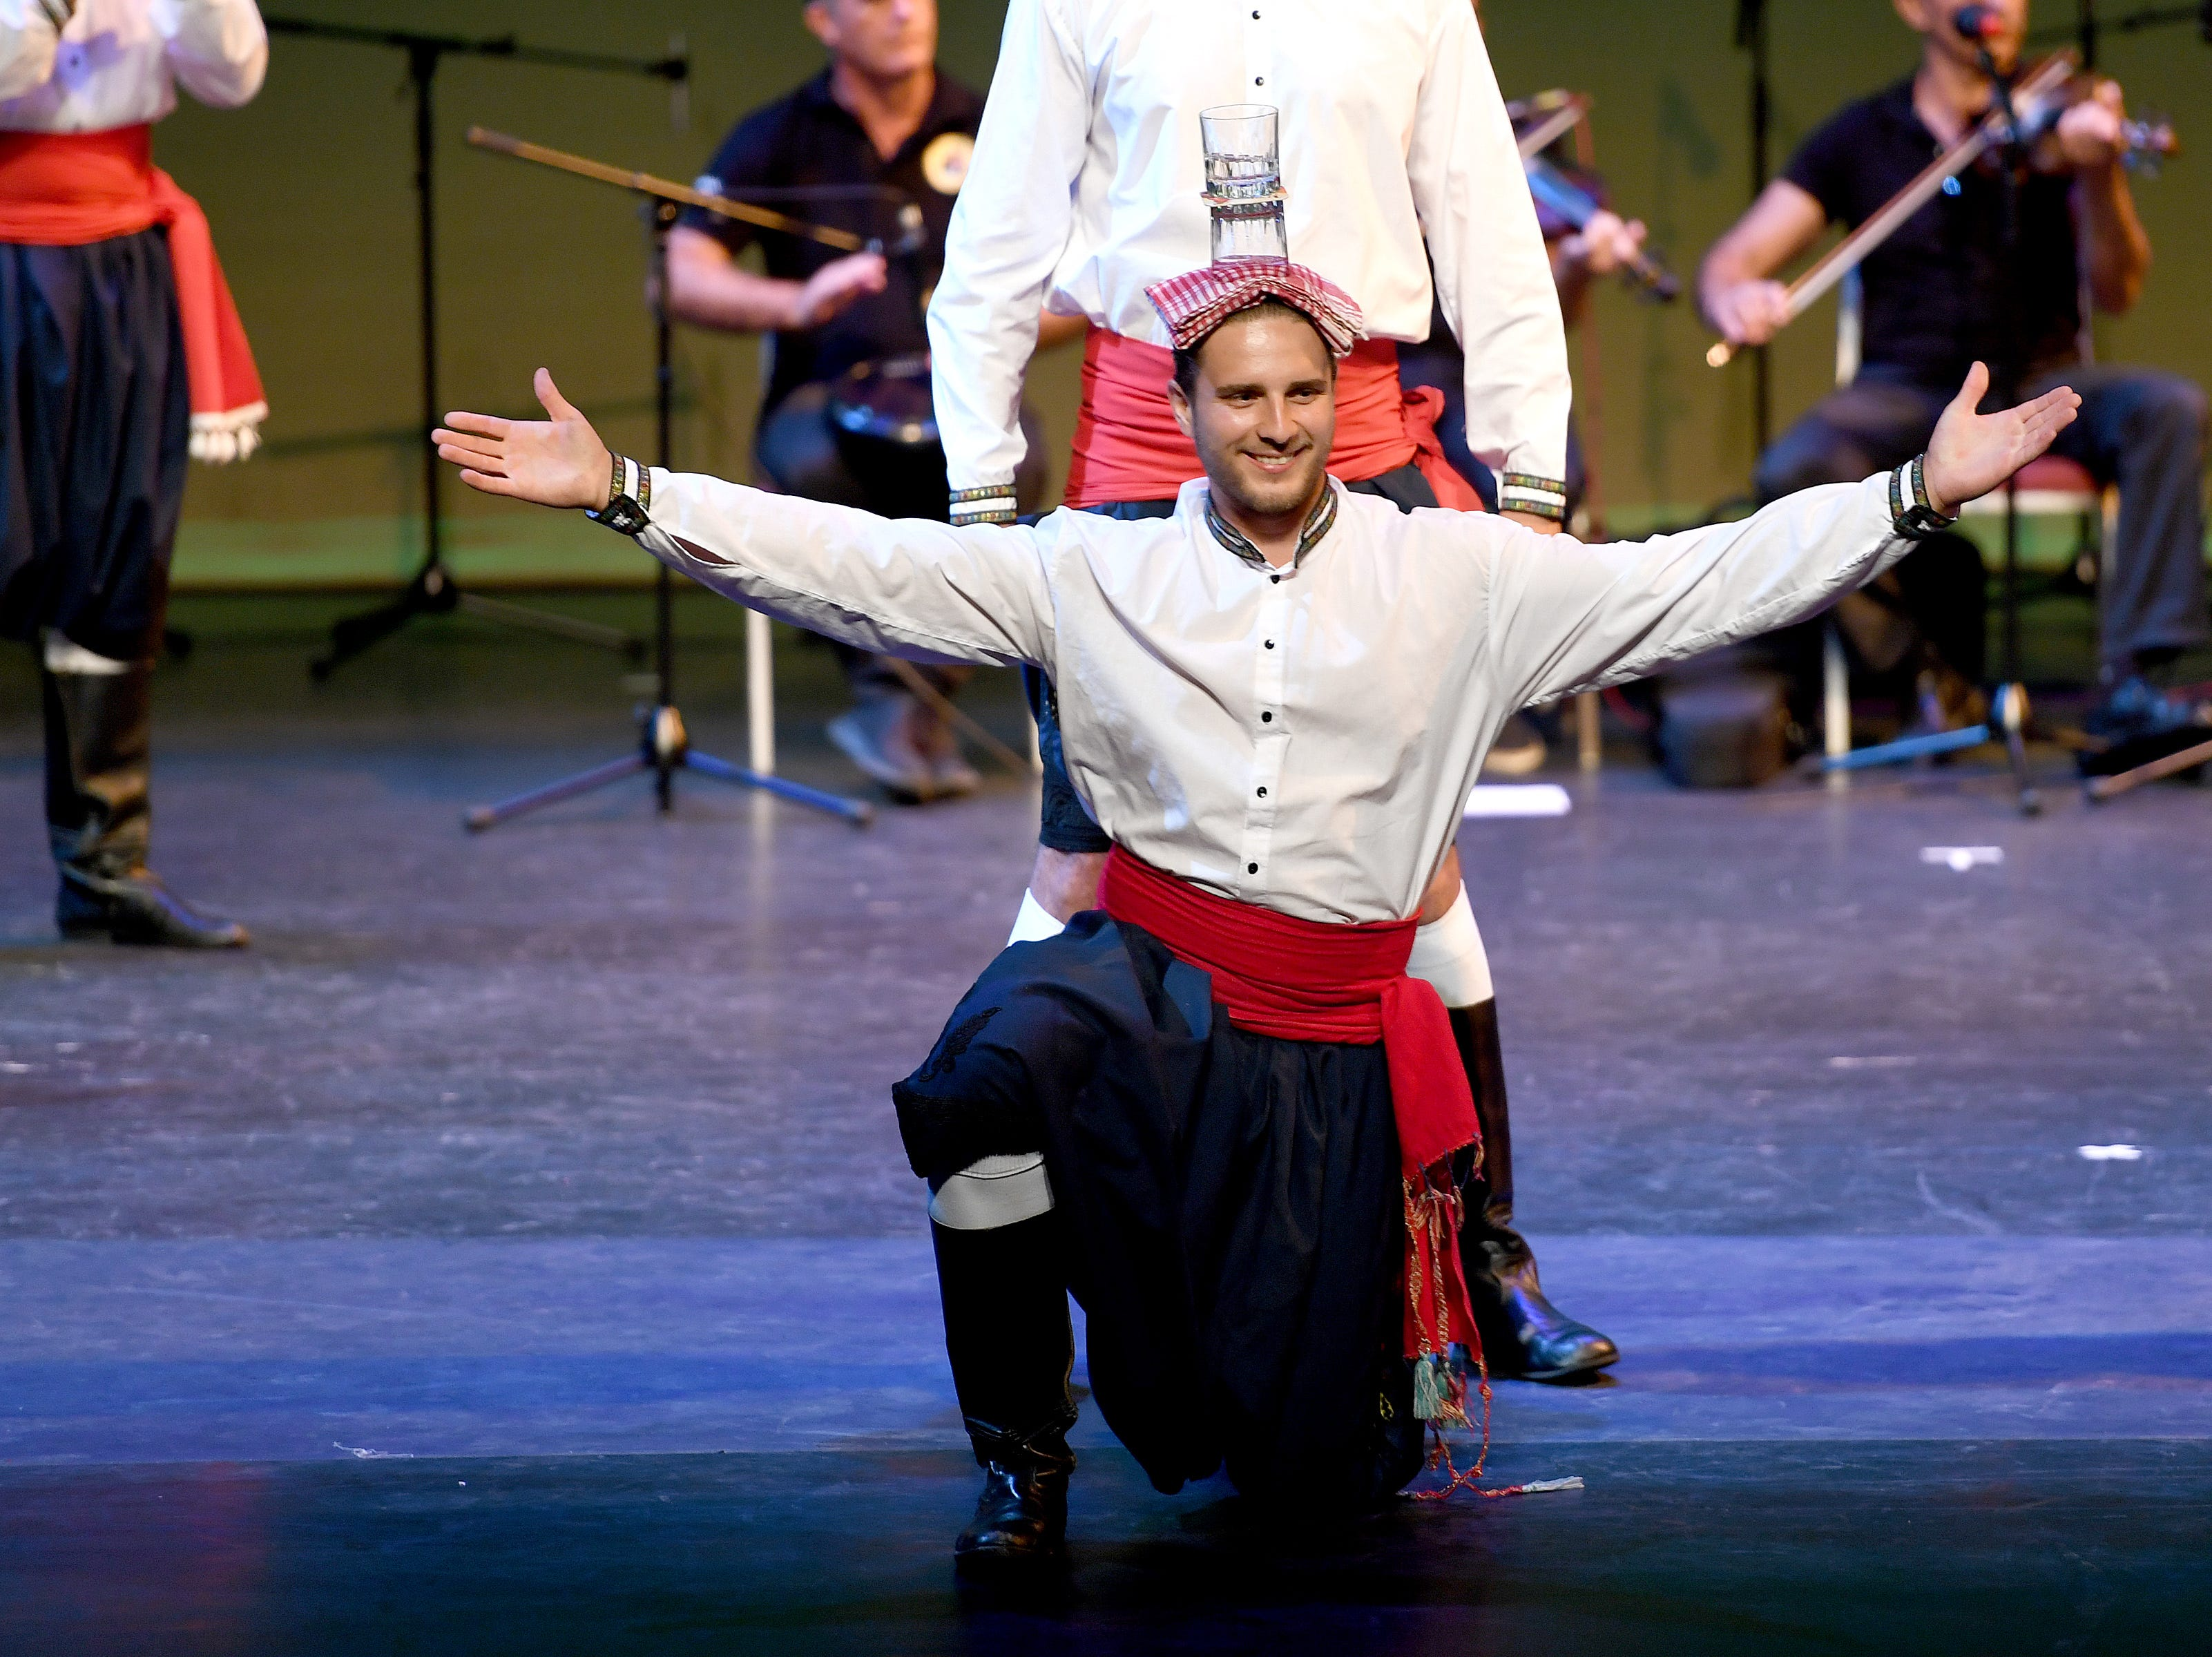 Folkmoot 2018 brought performers from around the world together to showcase their traditional folk dances on stage at the Diana Wortham Theatre on Friday, July 27, 2018.